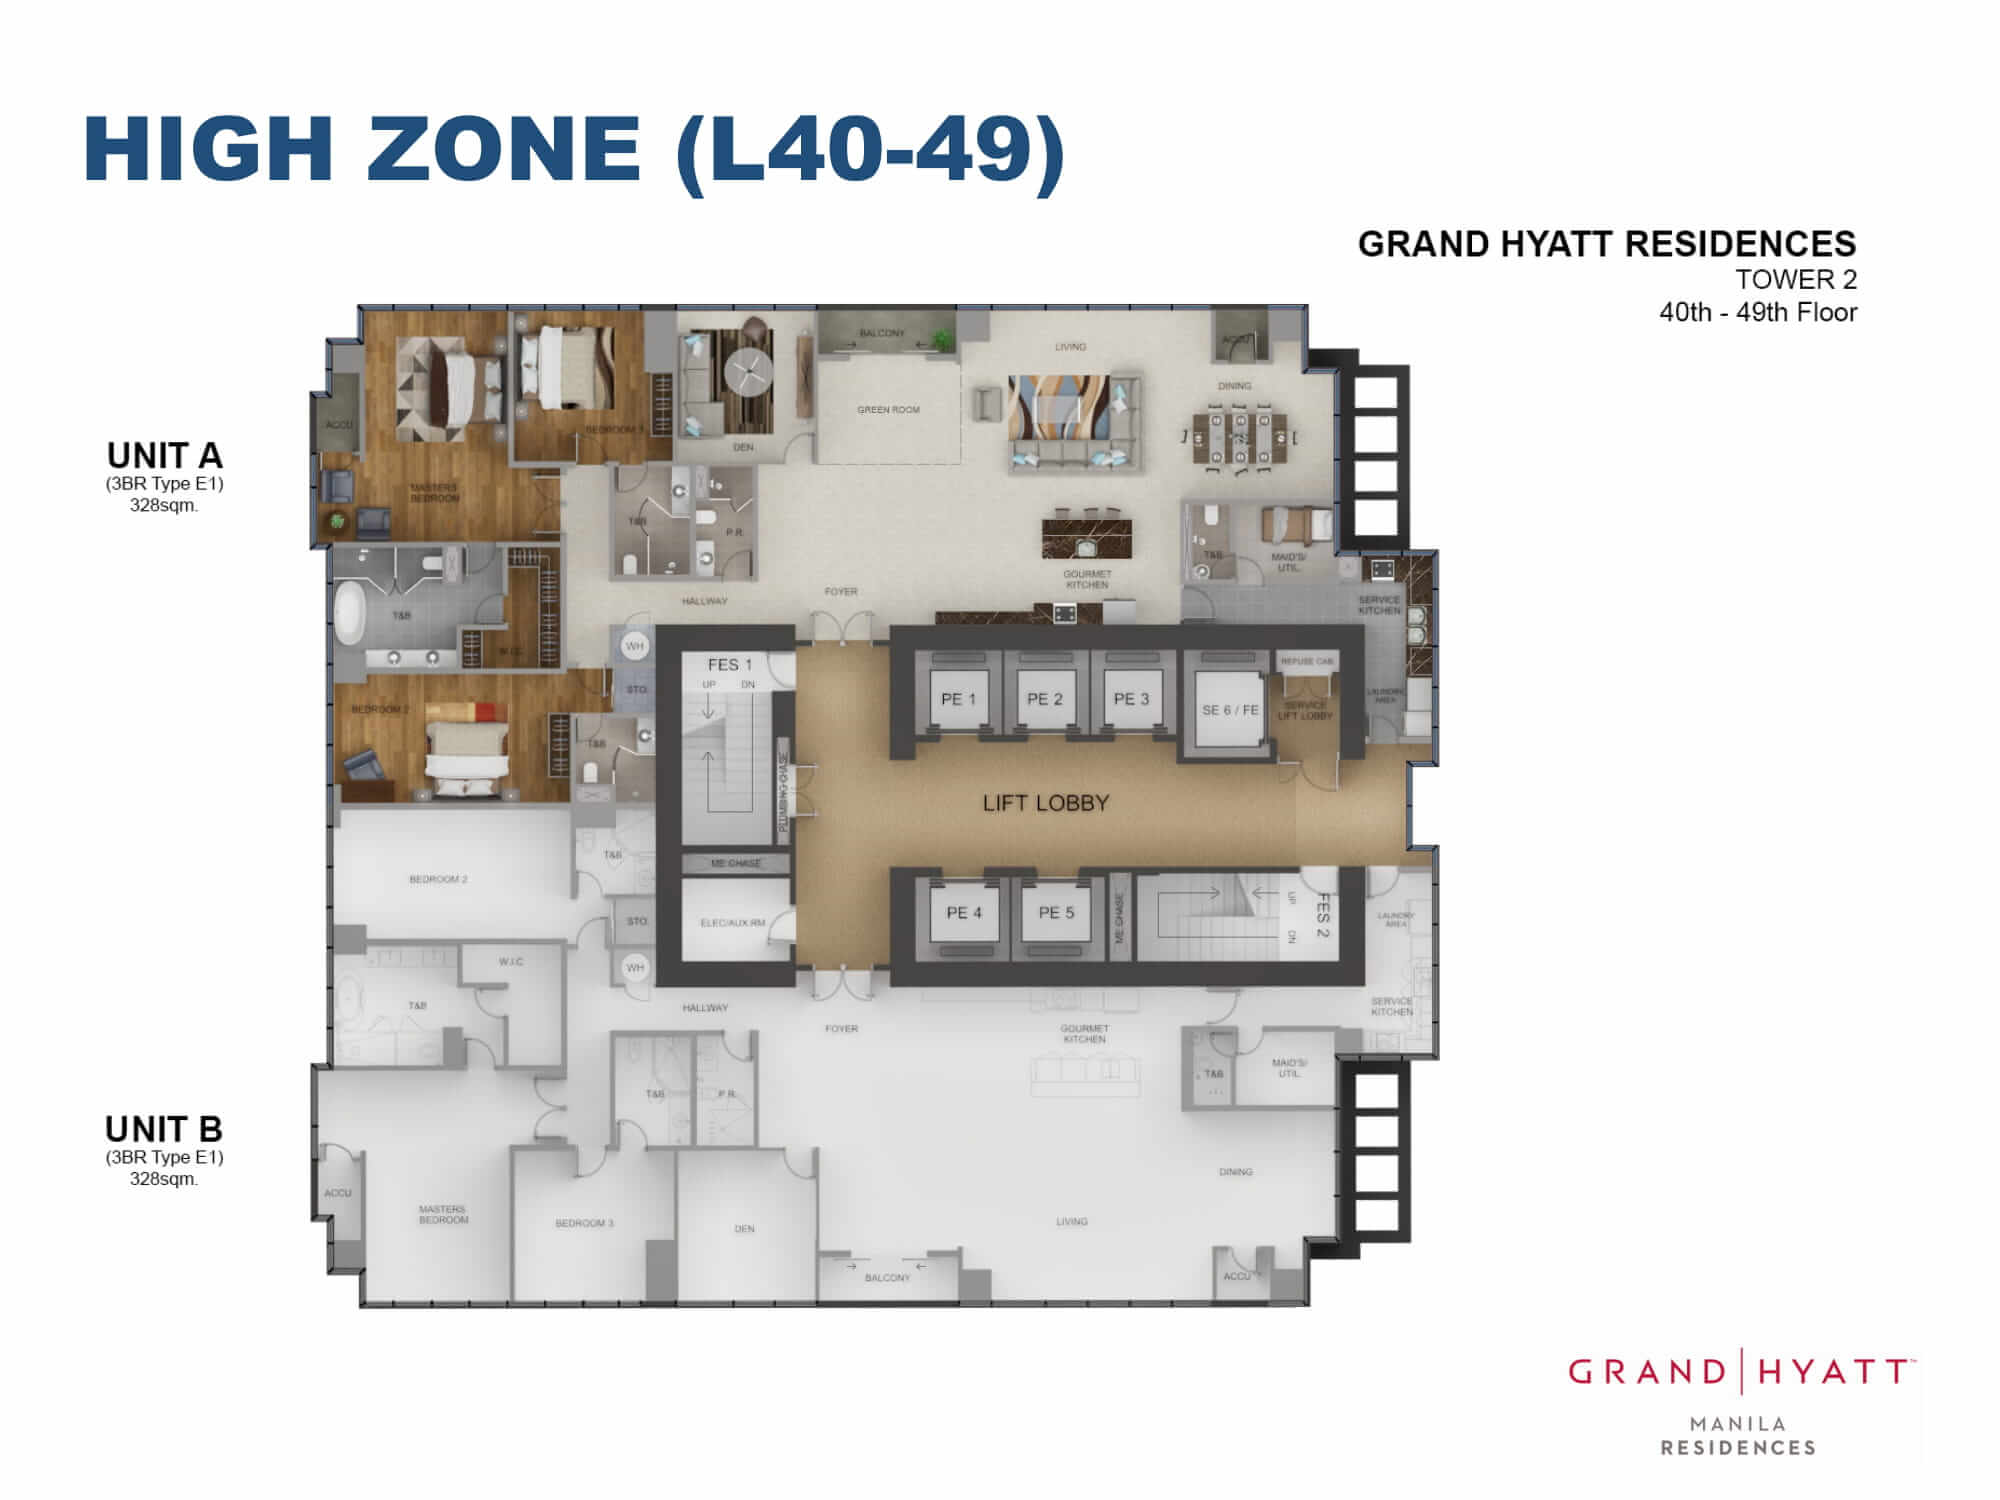 HIGH ZONE L40-49 - GRAND HYATT RESIDENCES GOLD TOWER